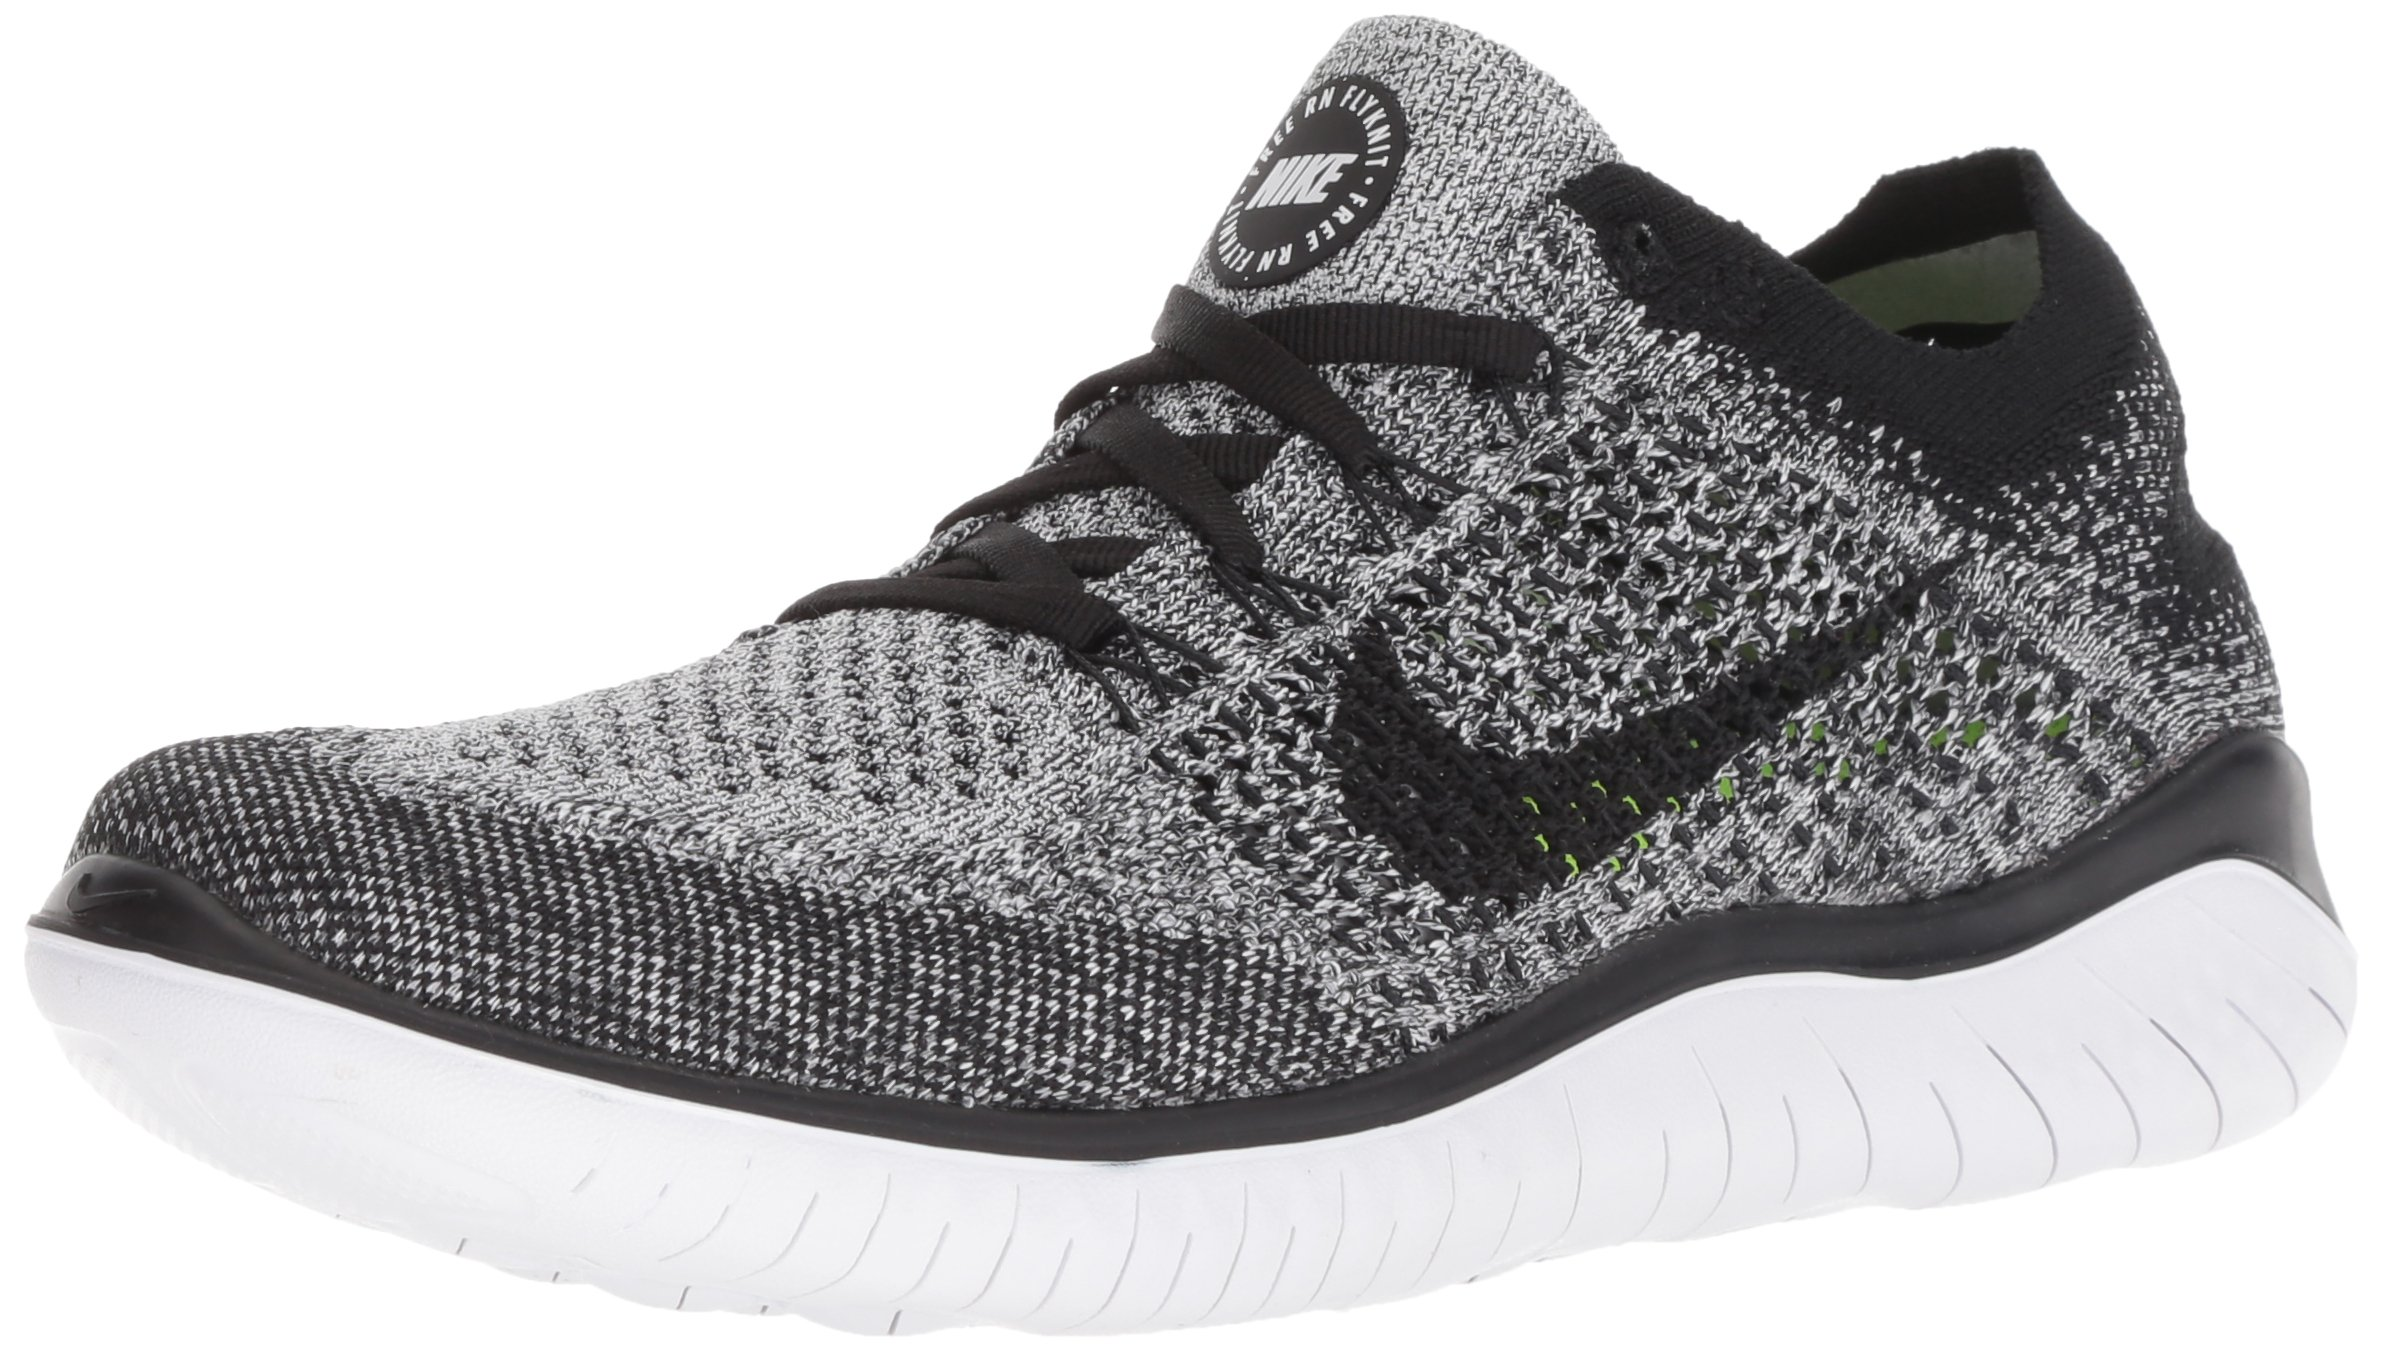 Nike Womens Free RN Flyknit Running Shoes White/Black 8 by Nike